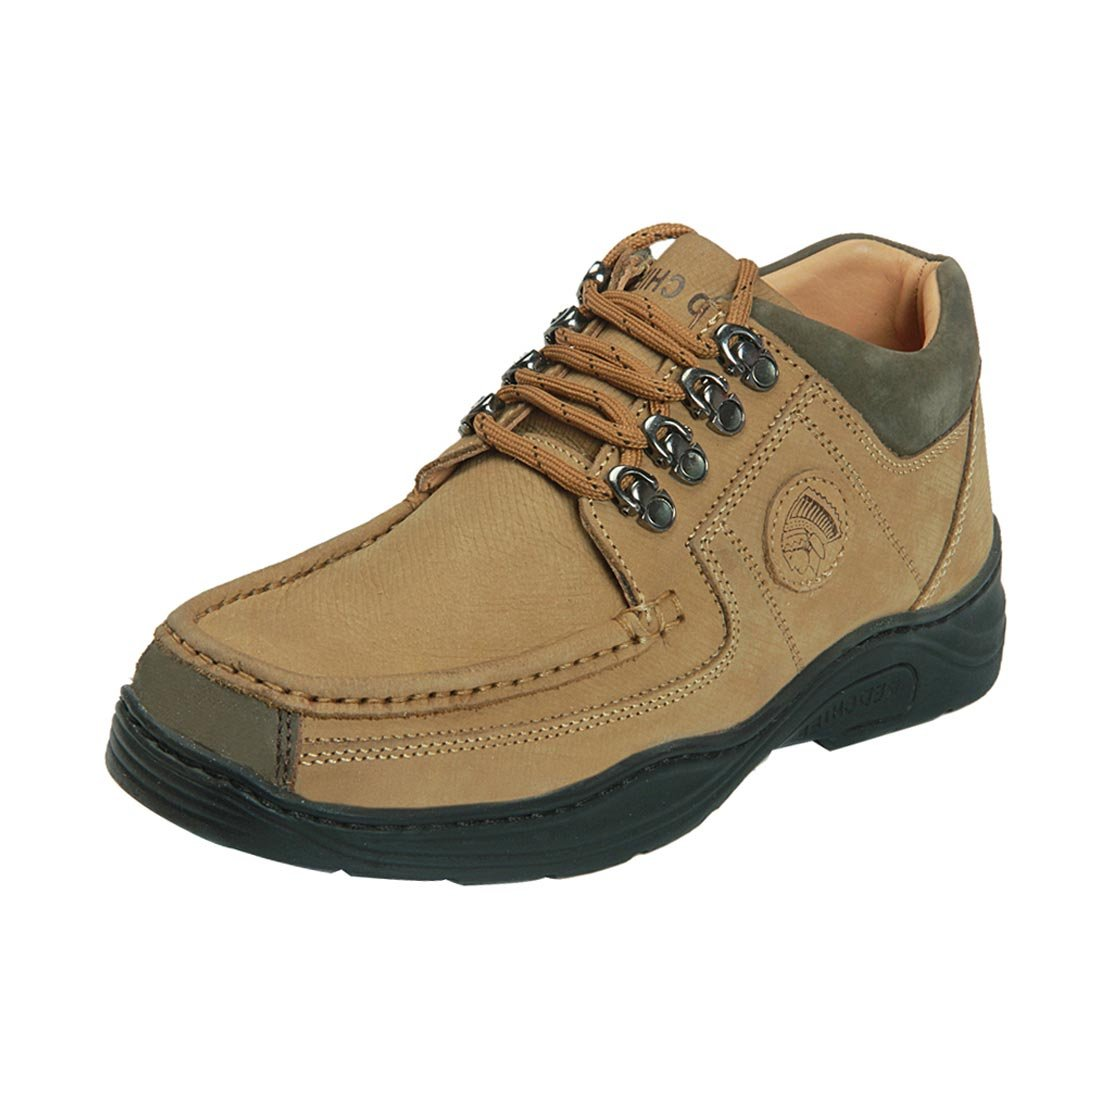 Red Chief MenS Rc1200 Camel Casual Lace-Ups 10 Uk image 1